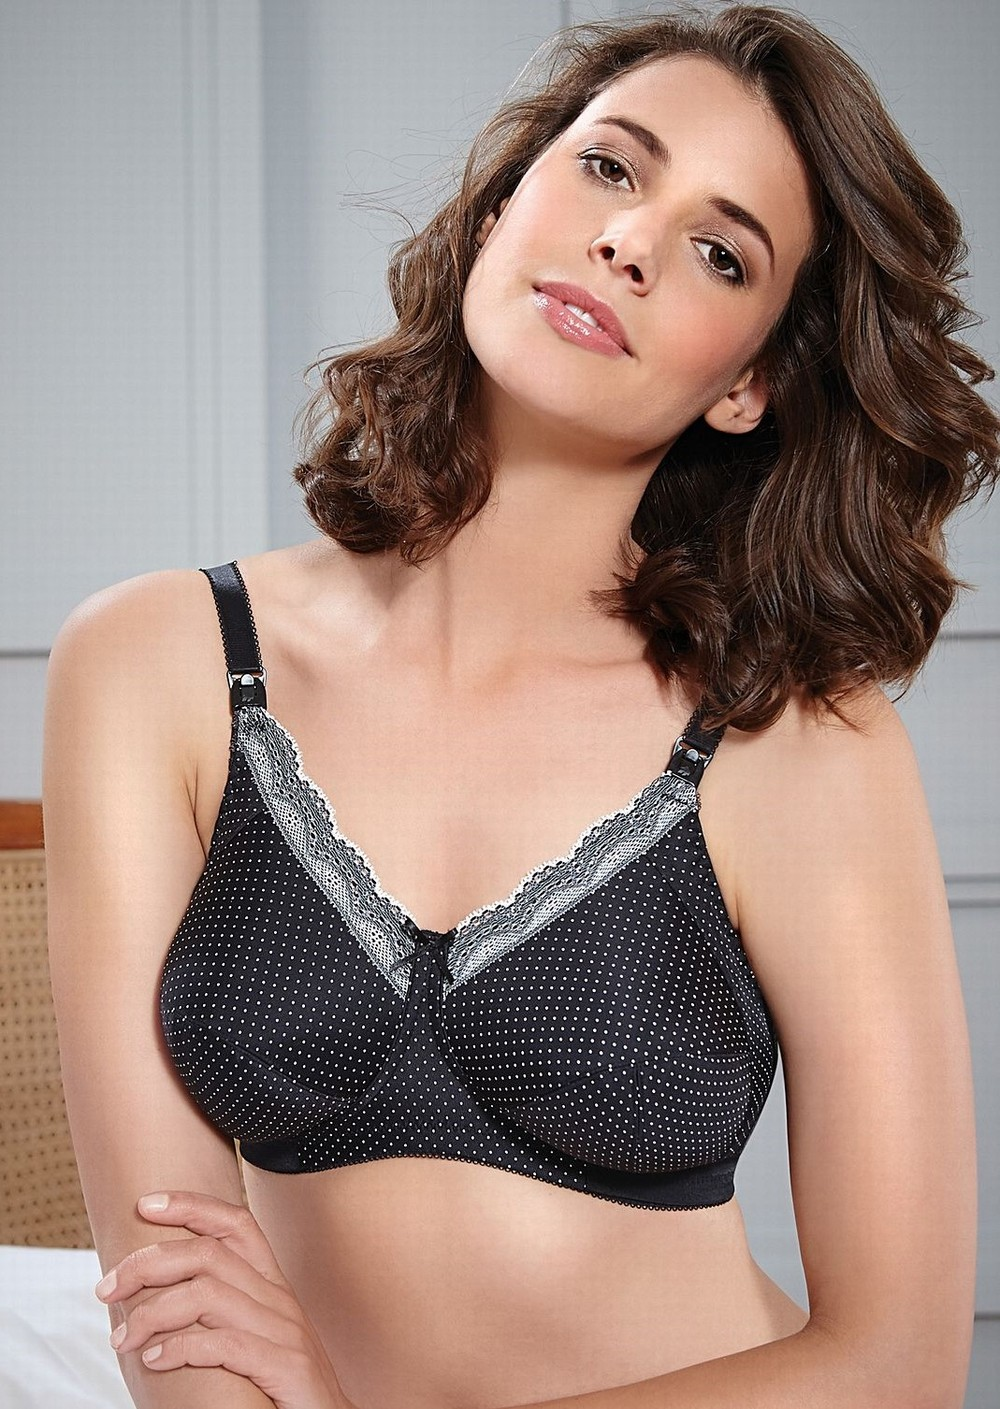 be994baededf1 Royce Ava Nursing Bra - Black and Cream Spot